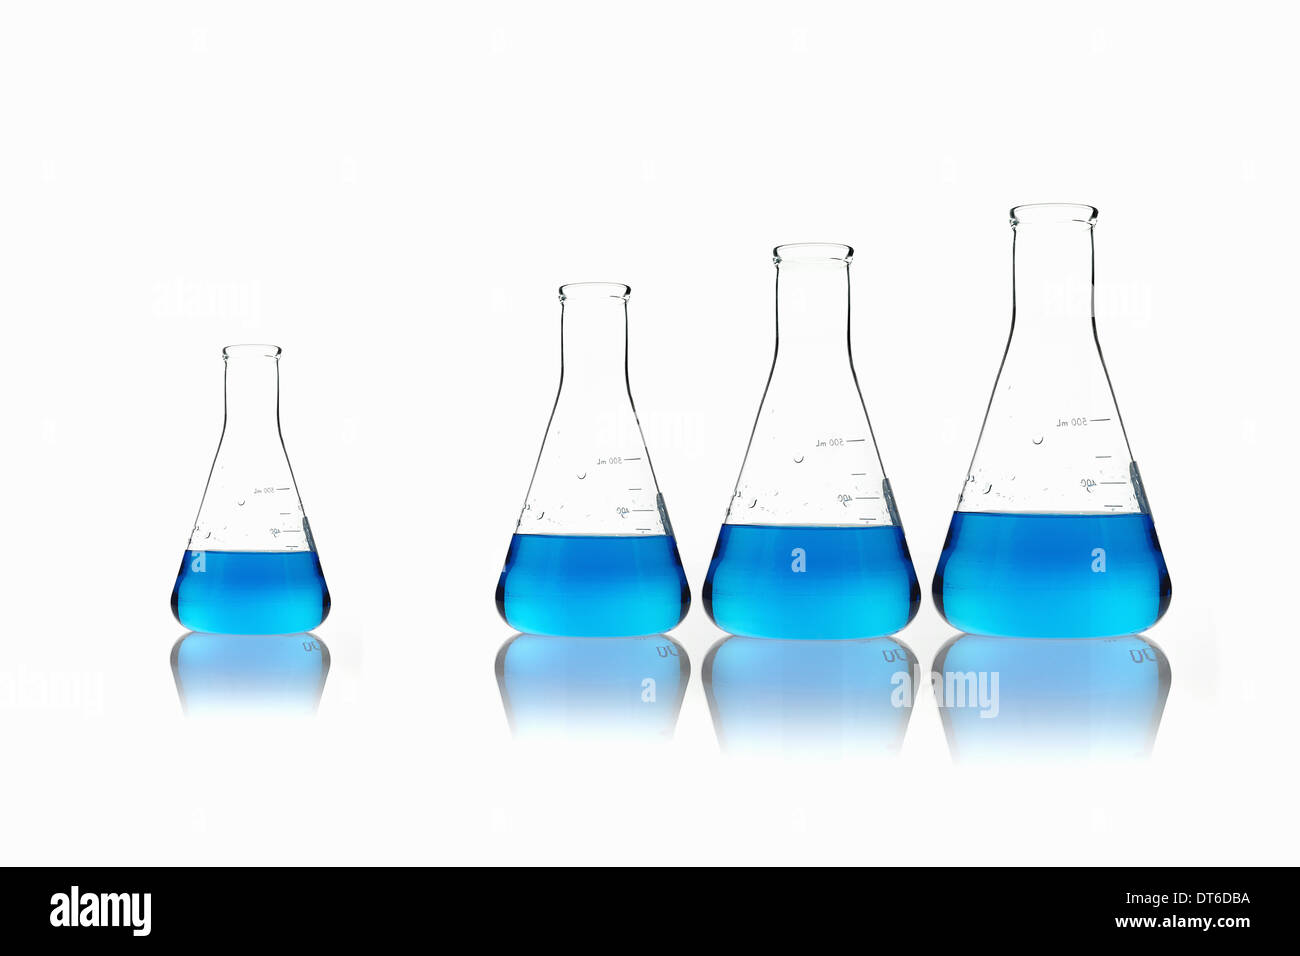 Conical glass scientific flasks holding blue liquids. Lined up in size order, with one set apart. - Stock Image